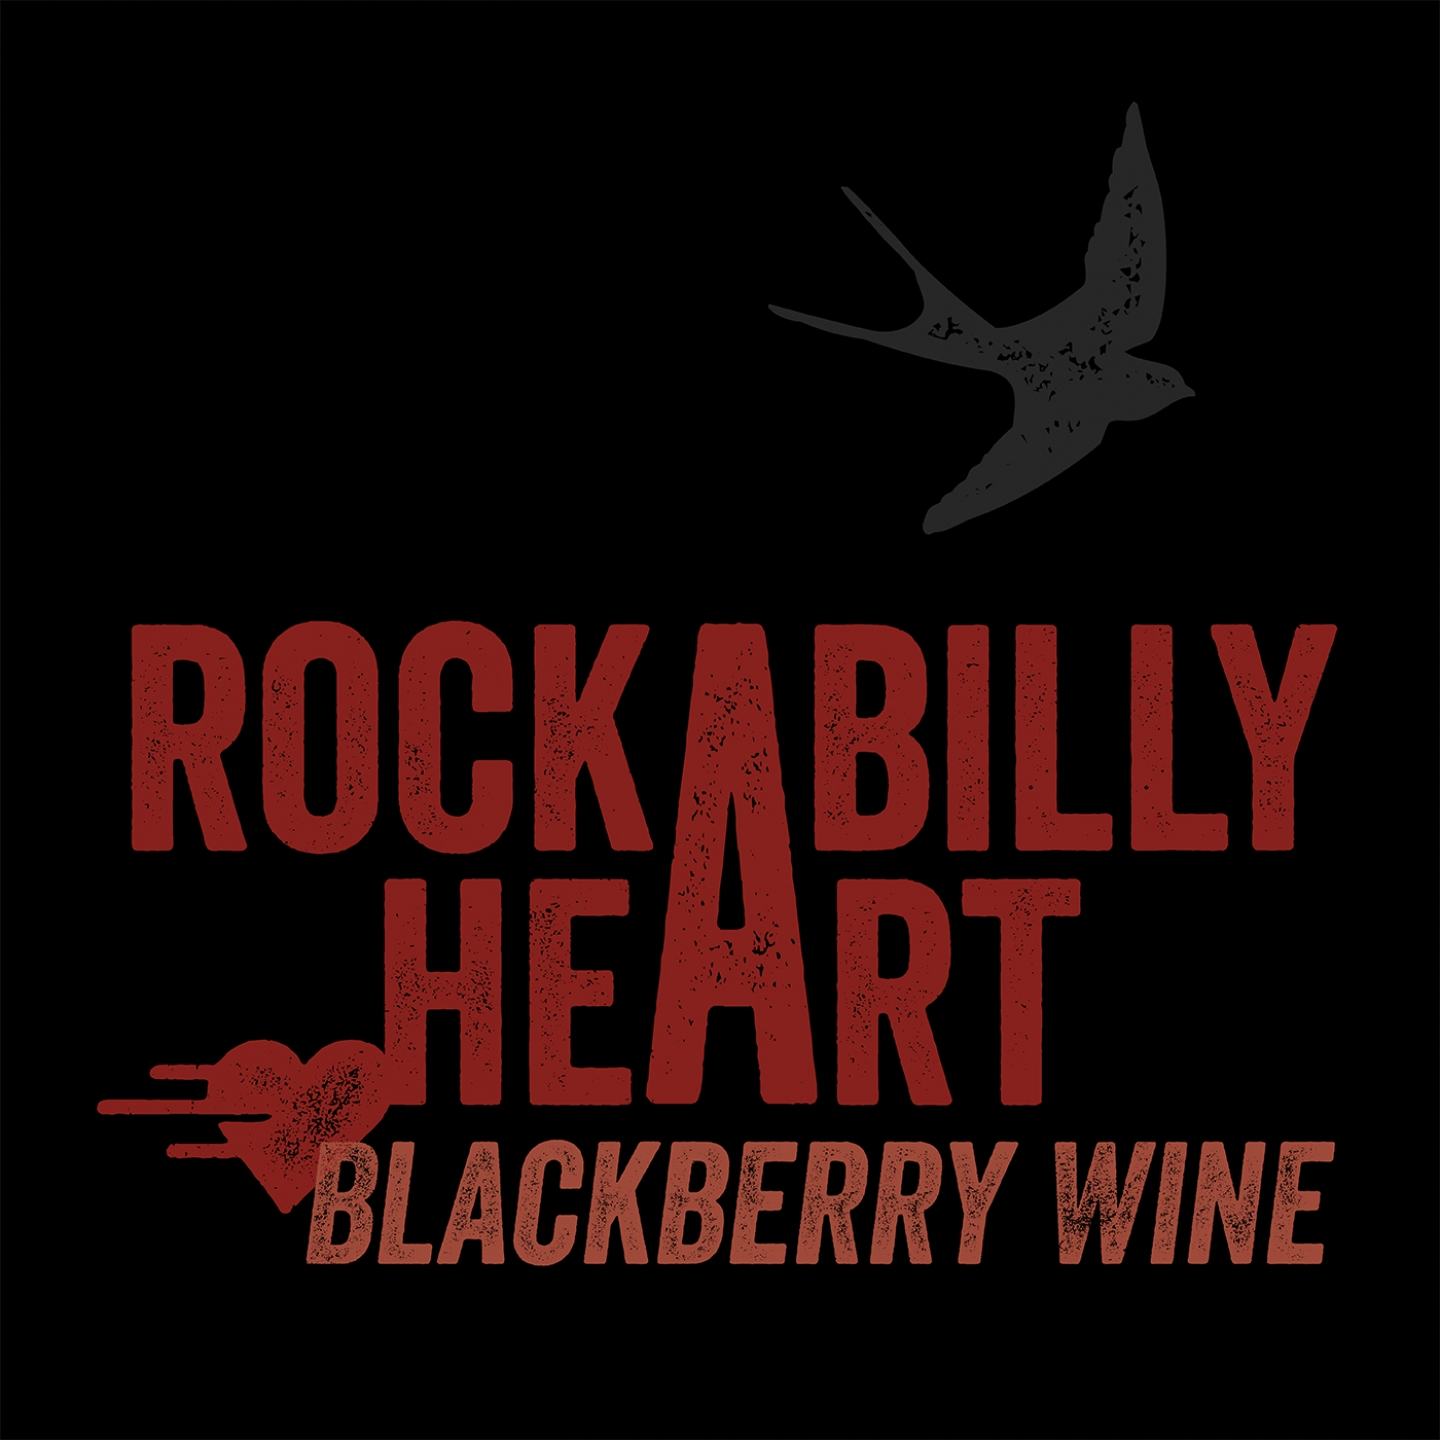 Rockabilly Heart – 'Blackberry Wine' (Single)